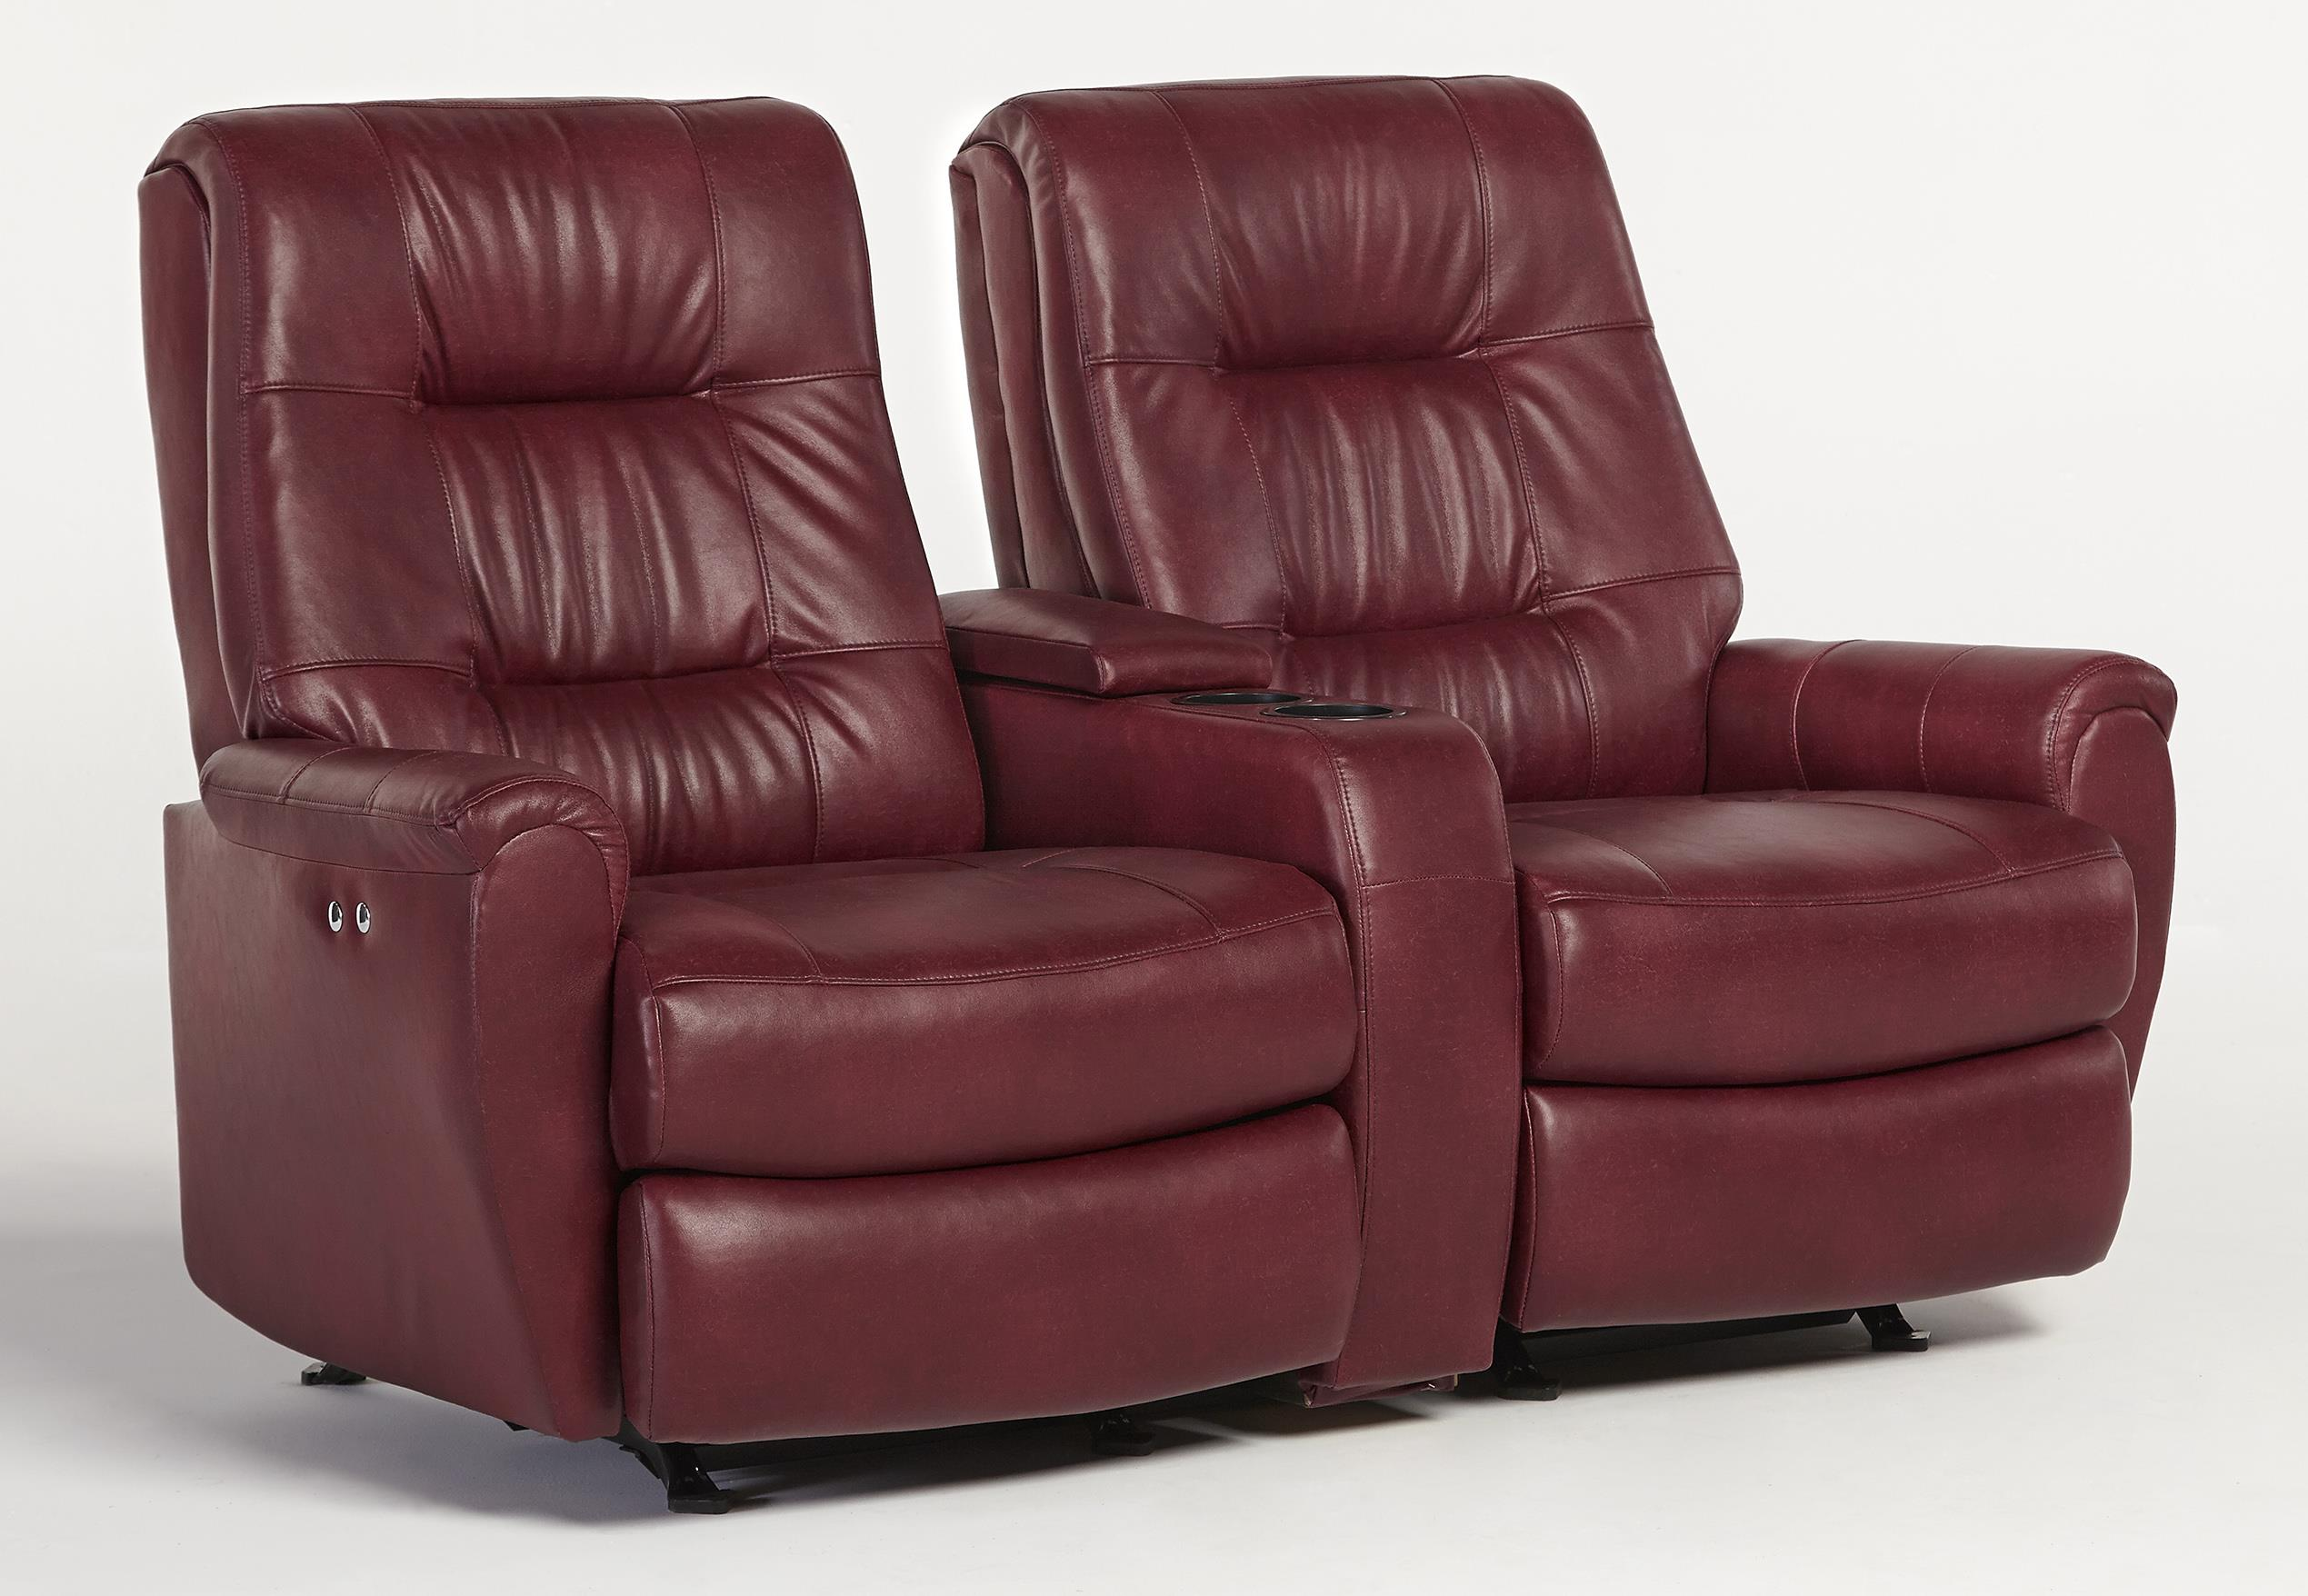 Small Scale Rocking Reclining Loveseat with Drink Holder and